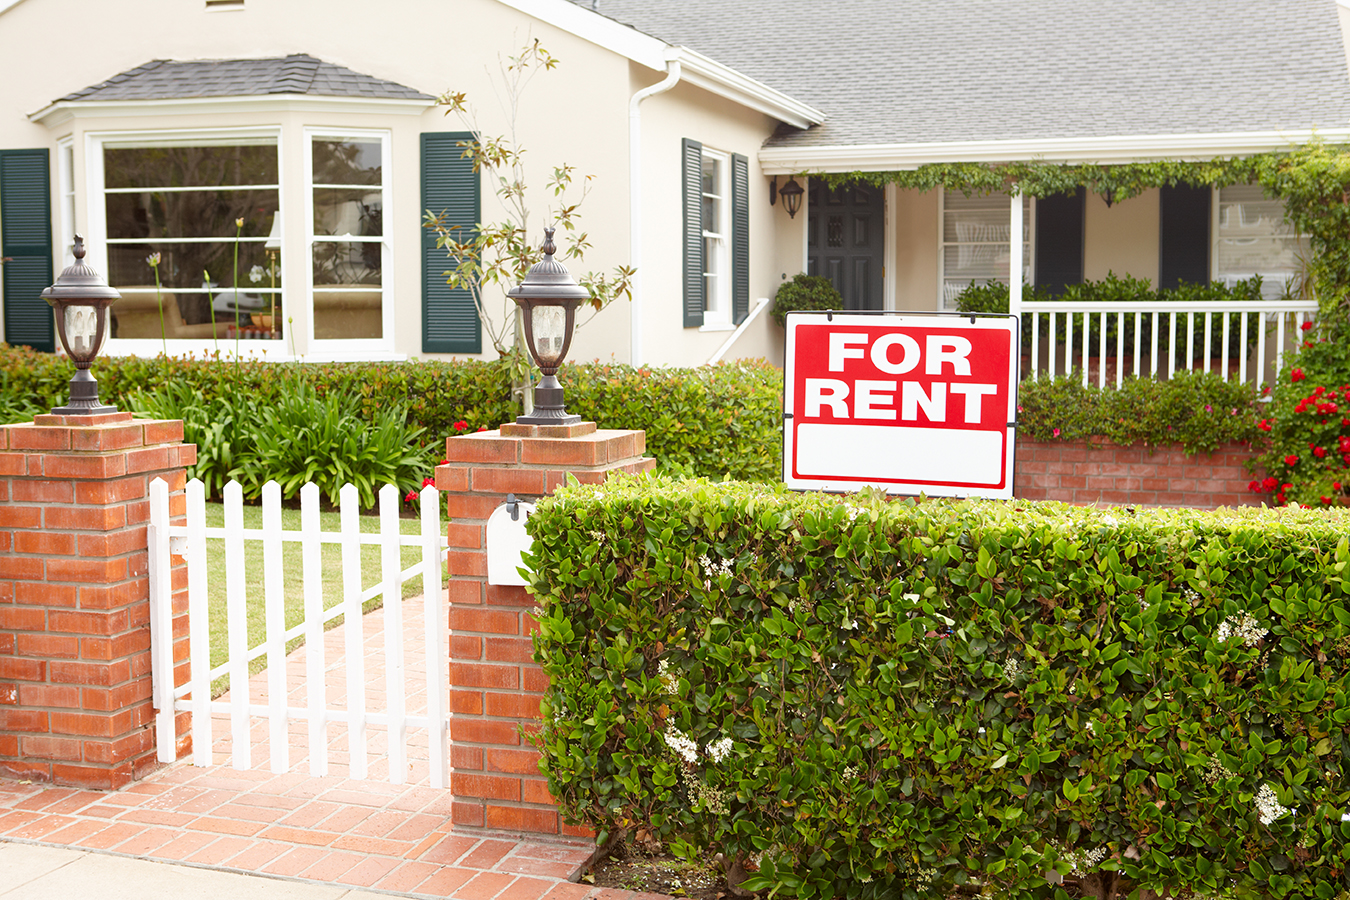 ,Houses For Rent In My Area By Owner  ,Houses For Rent In My Area  ,cheap houses for rent in my area  ,zillow houses for rent in my area  ,tiny houses for rent in my area  ,townhouses for rent in my area  ,houses for rent in my location  ,houses for rent in my neighborhood  ,section 8 houses for rent in my area  ,2 bedroom houses for rent in my area  ,4 bedroom houses for rent in my area  ,3 bedroom houses for rent in my area  ,houses for sale or rent in my area  ,three bedroom houses for rent in my area  ,houses for rent to own in my area  ,what do houses rent for in my area  ,cheap houses for rent in my location  ,houses for rent in my area  ,apartments and houses for rent in my area  ,houses for rent around my area  ,houses for rent in my home abhra  ,houses for rent in my area by owner  ,houses for rent in dehiwala area  ,houses for rent in ben davis area  ,houses for rent in sherman denison area  ,houses for rent in the gentilly area of new orleans  ,houses for rent i my area  ,houses for rent in la area  ,houses for rent in lisburn area  ,houses for rent in okc metro area  ,houses for rent in northern areas port elizabeth  ,houses for rent near my location  ,houses for rent in lincoln ne area  ,houses for rent in highland area shreveport la  ,houses for rent in florence sc area  ,houses to rent in my area  ,houses for rent in university area charlotte nc  ,what houses are for rent in my area  ,houses for rent in yakkala area  ,houses for rent in ben davis area zillow  ,cheap house for rent in pasig area  ,zillow houses for rent bay area  ,Houses For Rent In My Area  ,cheap houses for rent in my area  ,zillow houses for rent in my area  ,tiny houses for rent in my area  ,townhouses for rent in my area  ,houses for rent in my location  ,houses for rent in my neighborhood  ,section 8 houses for rent in my area  ,2 bedroom houses for rent in my area  ,4 bedroom houses for rent in my area  ,3 bedroom houses for rent in my area  ,houses for sale or rent in my area  